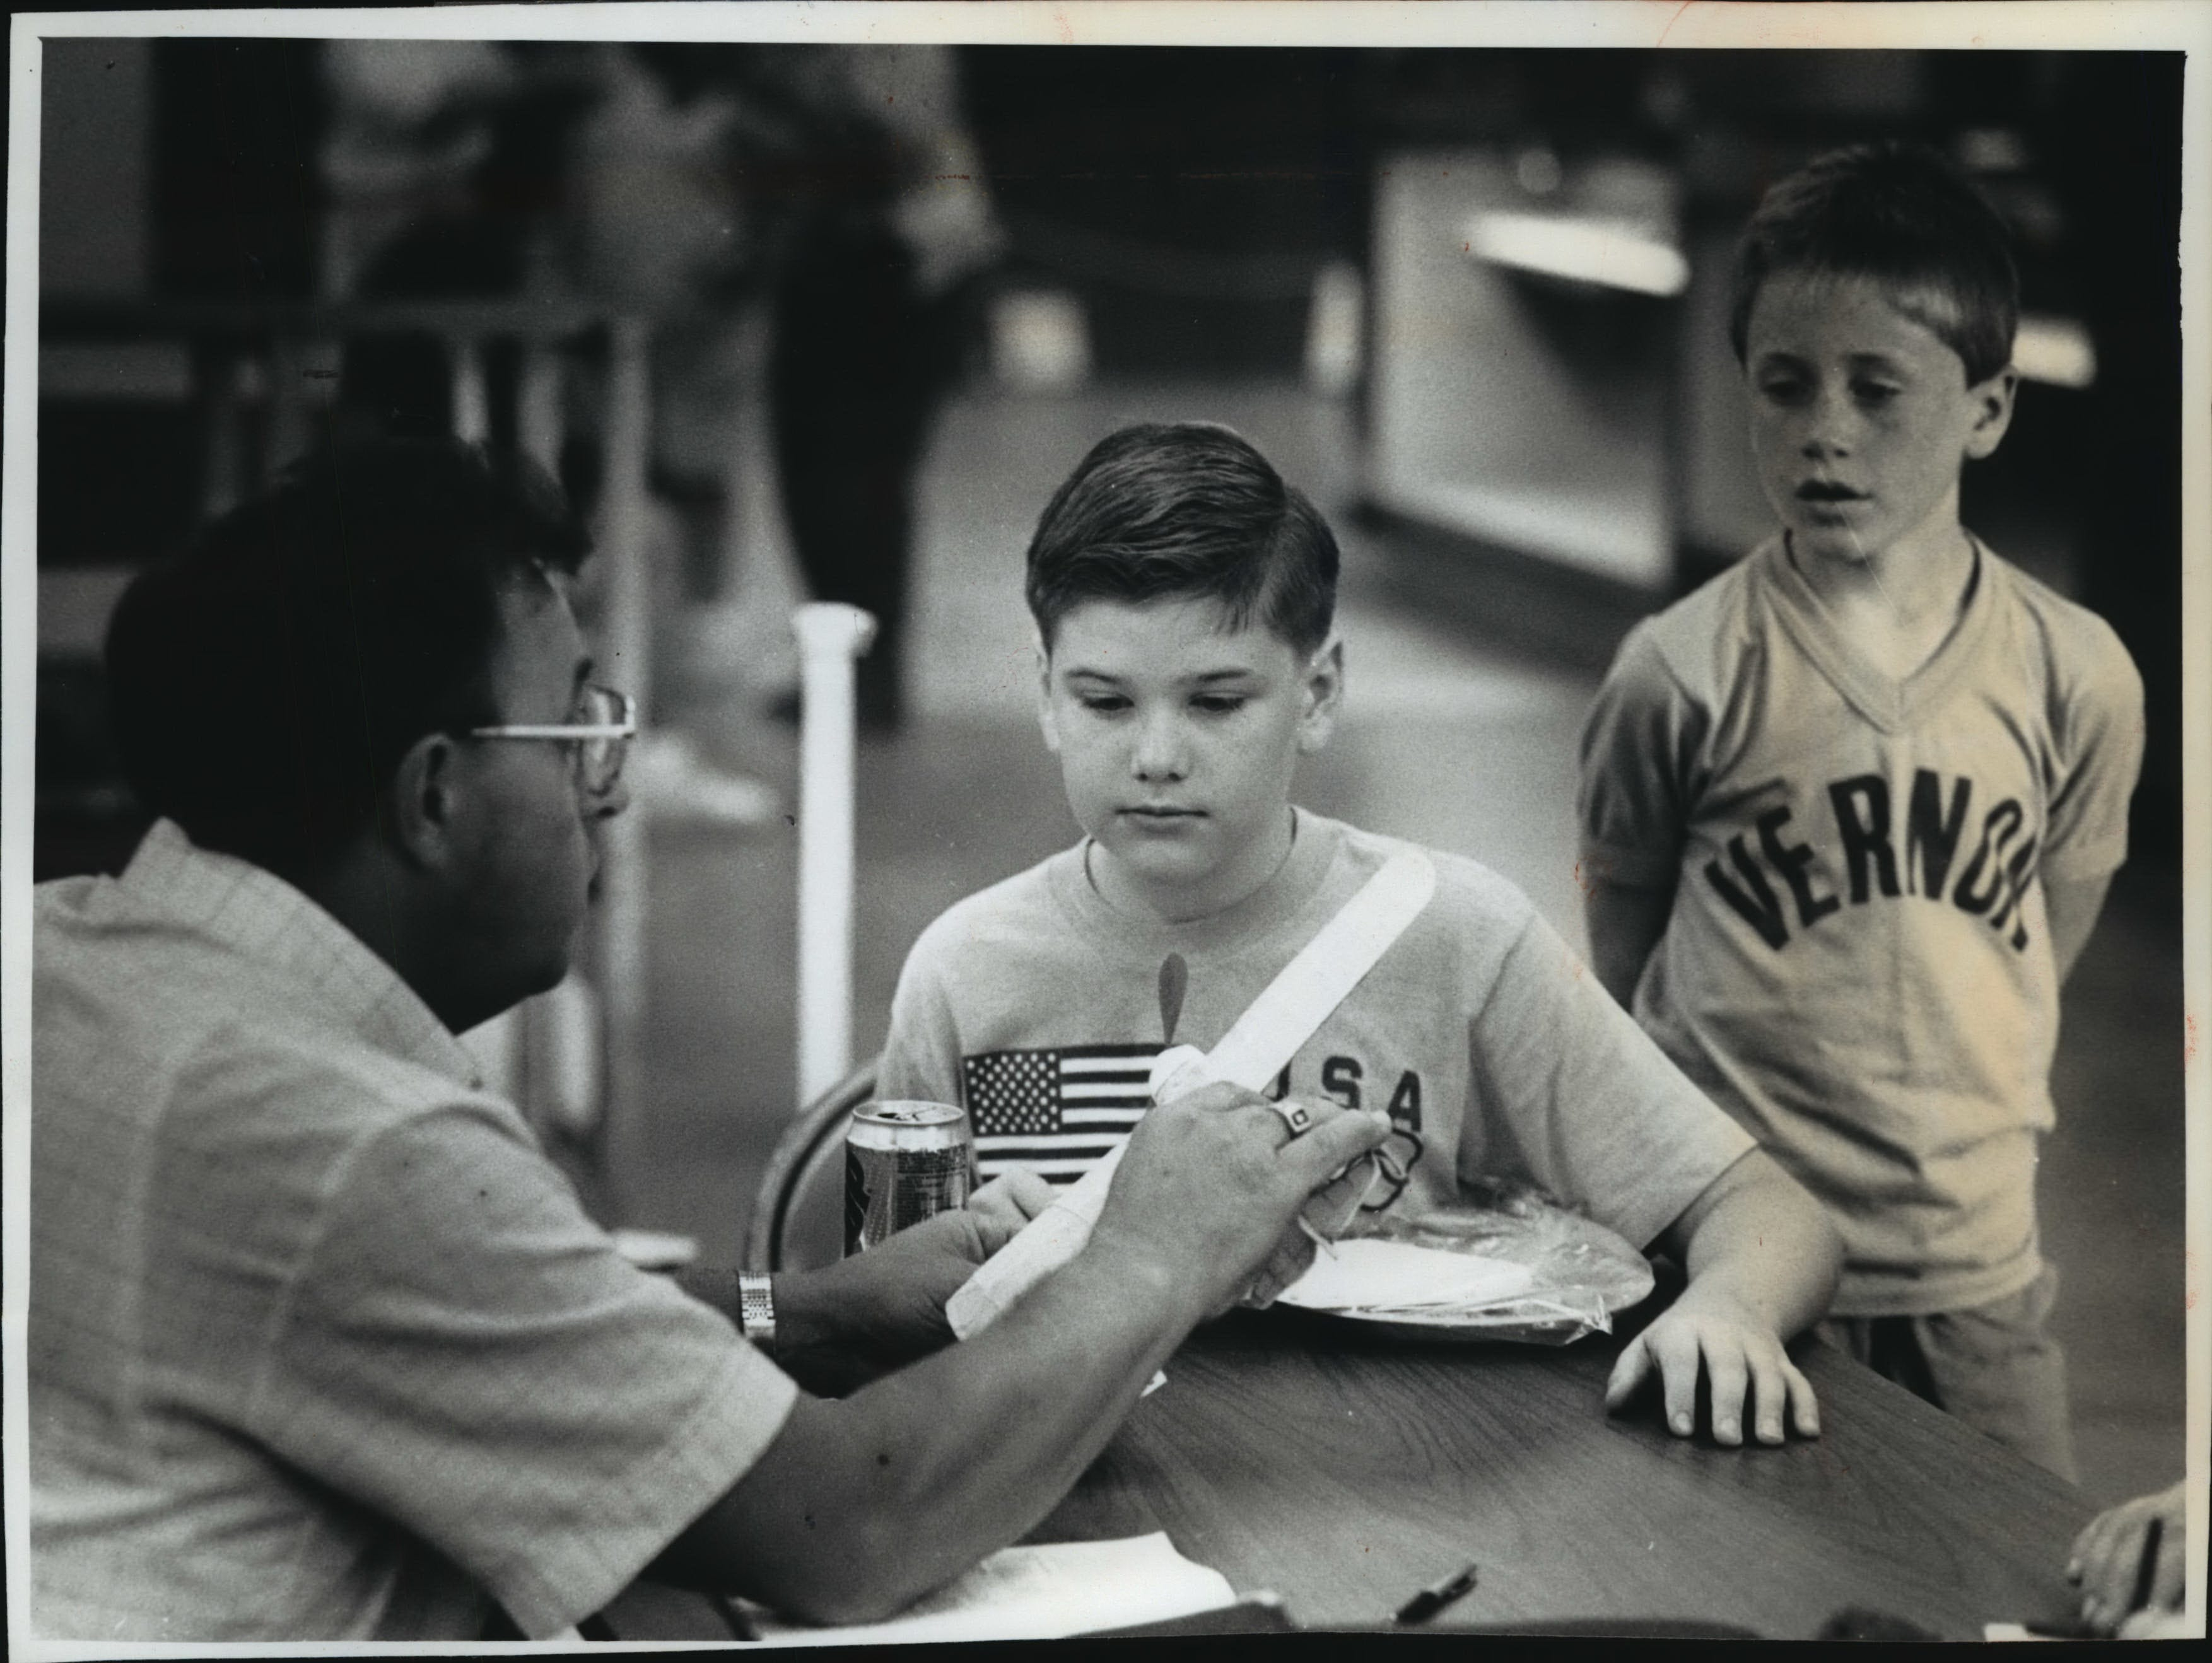 Carl Smith, a retired 4-H youth adviser, evaluates a Taylor Craft airplane built by Ted Grant, 12, of Sussex. Grant entered the plane Wednesday in the home craft display for youngsters at the Waukesha County Fair. The fair continues through Sunday with activities that include national touring performers, a tractor pull, draft horse shows and fireworks.